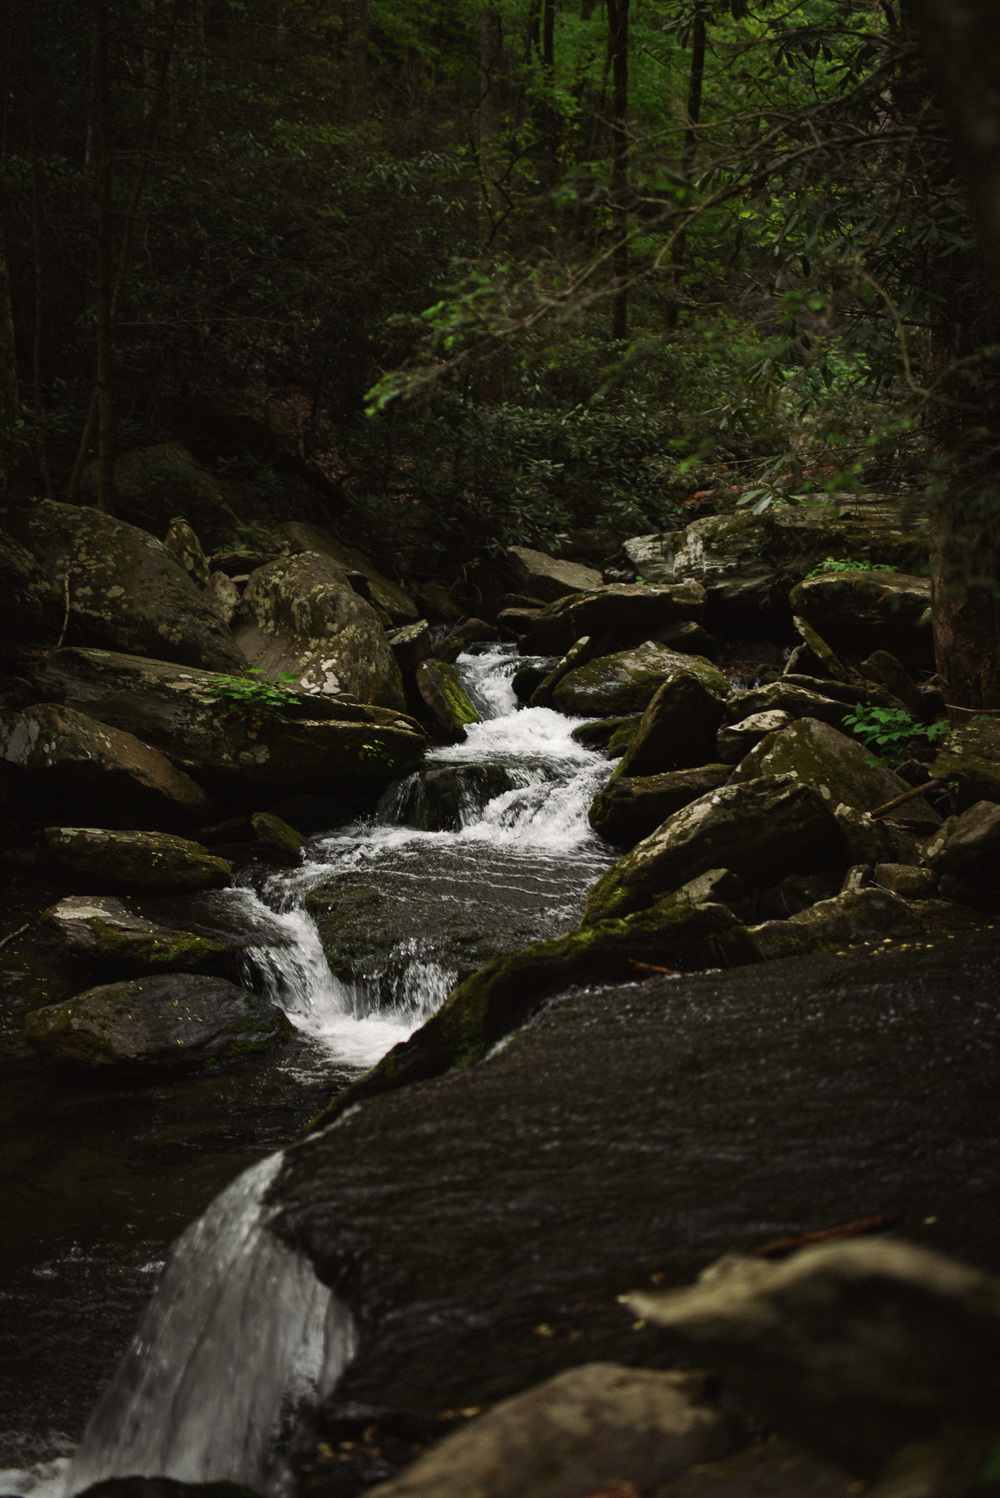 Asheville Folk. Waterfalls and Picnics by Chelsea Lane. A hike to Catawba Falls. Winding through the thin towering trees, you follow the water as it creates small falls and rushes over river rocks.